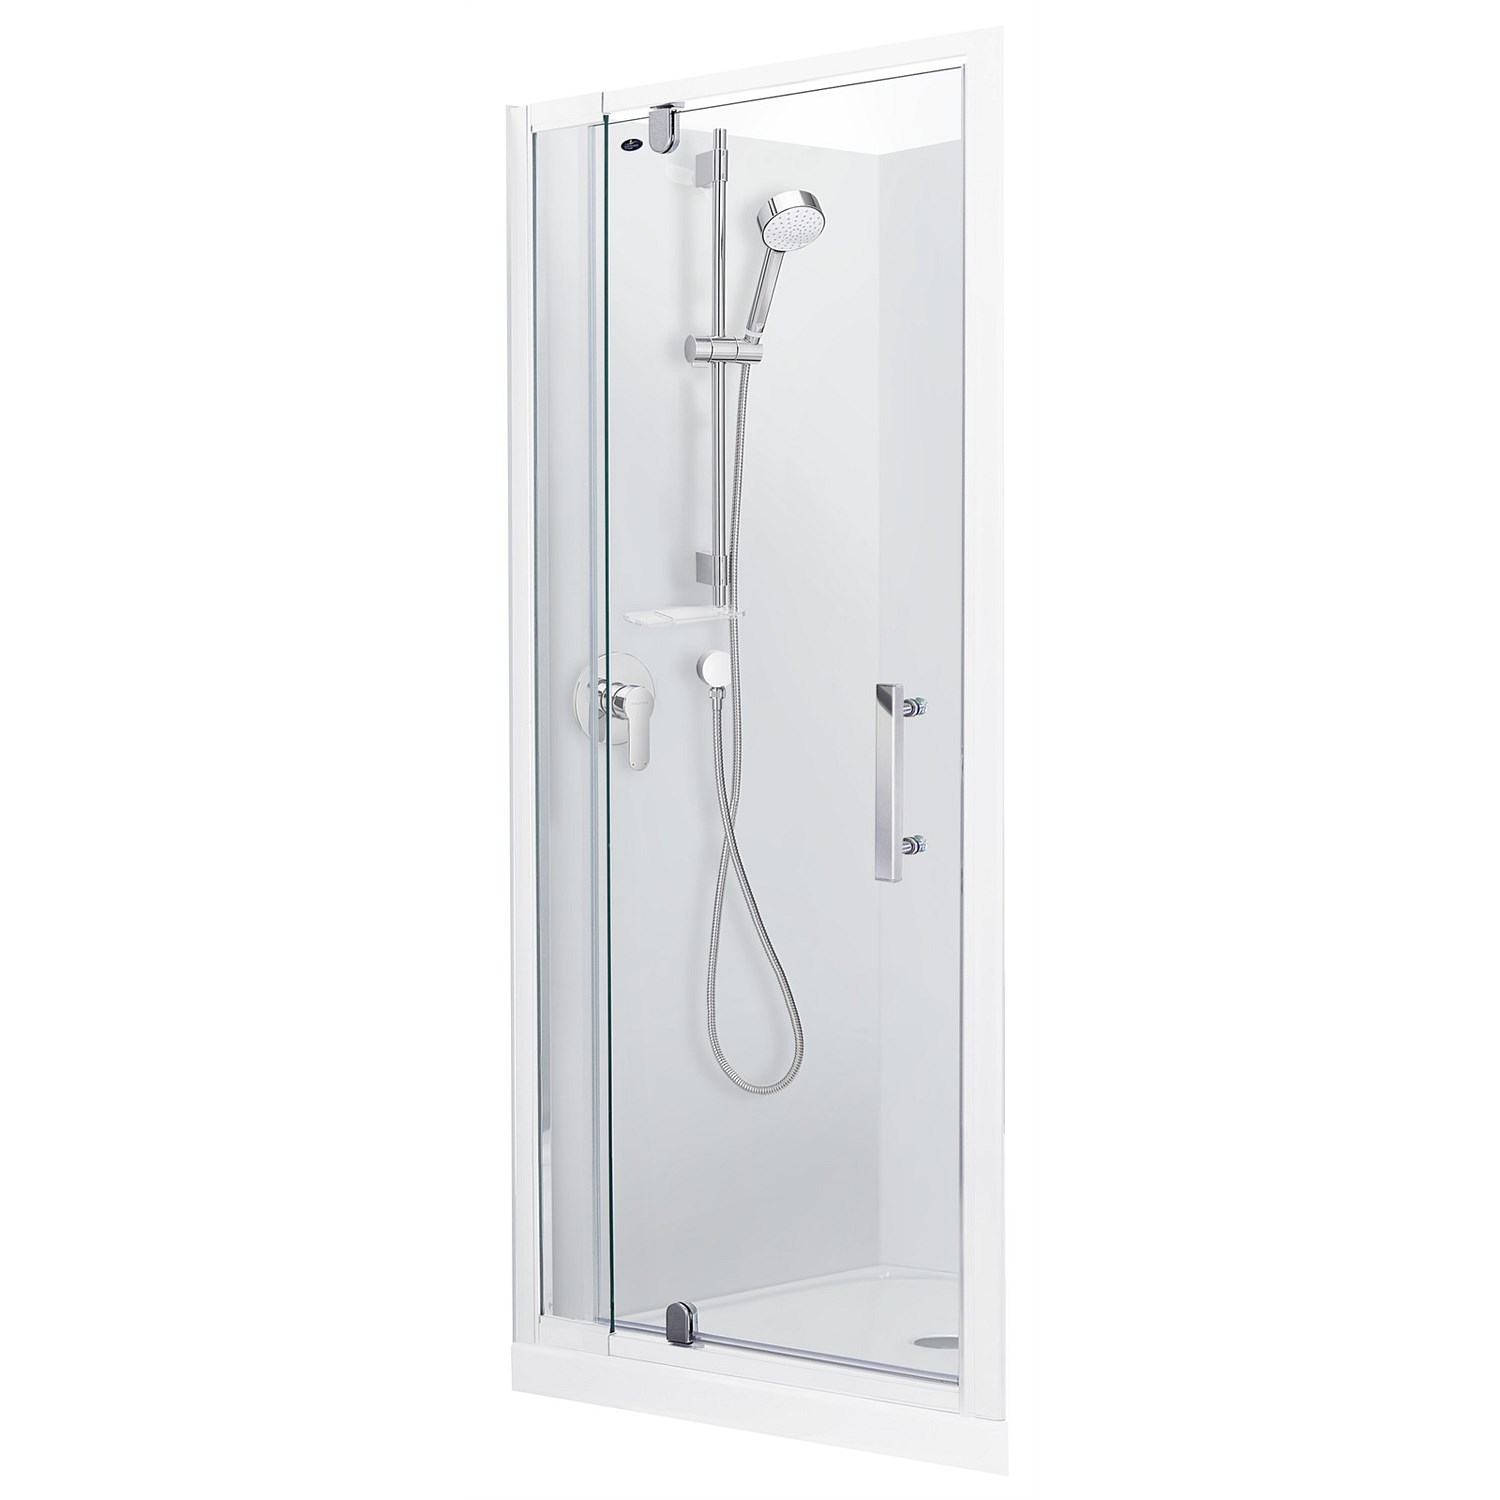 Showers - Englefield Azure 1000mm Alcove Square Shower Enclosure